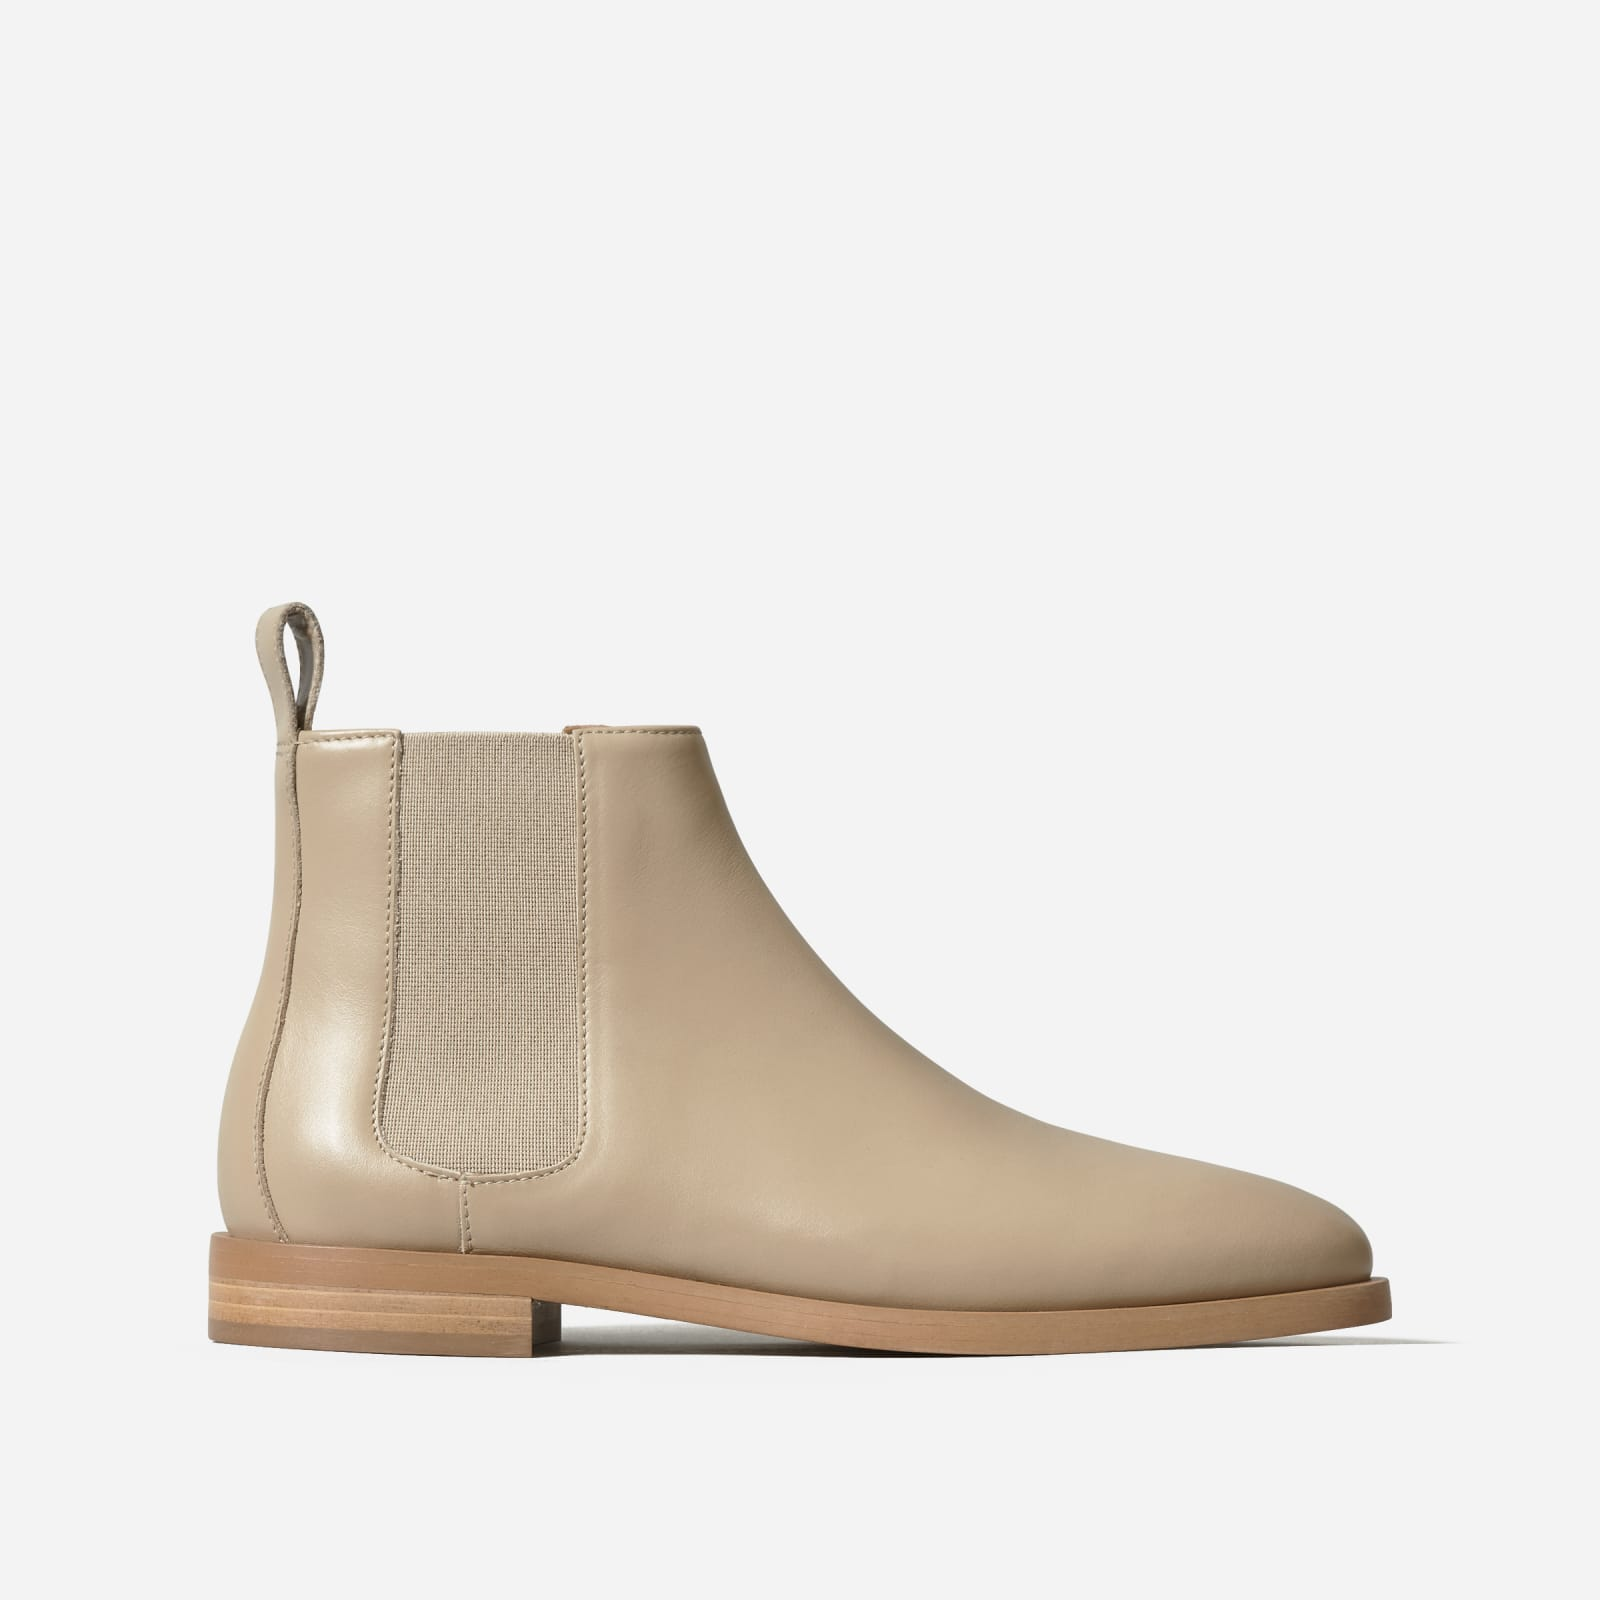 new modern chelsea boot by everlane in tan, size 6